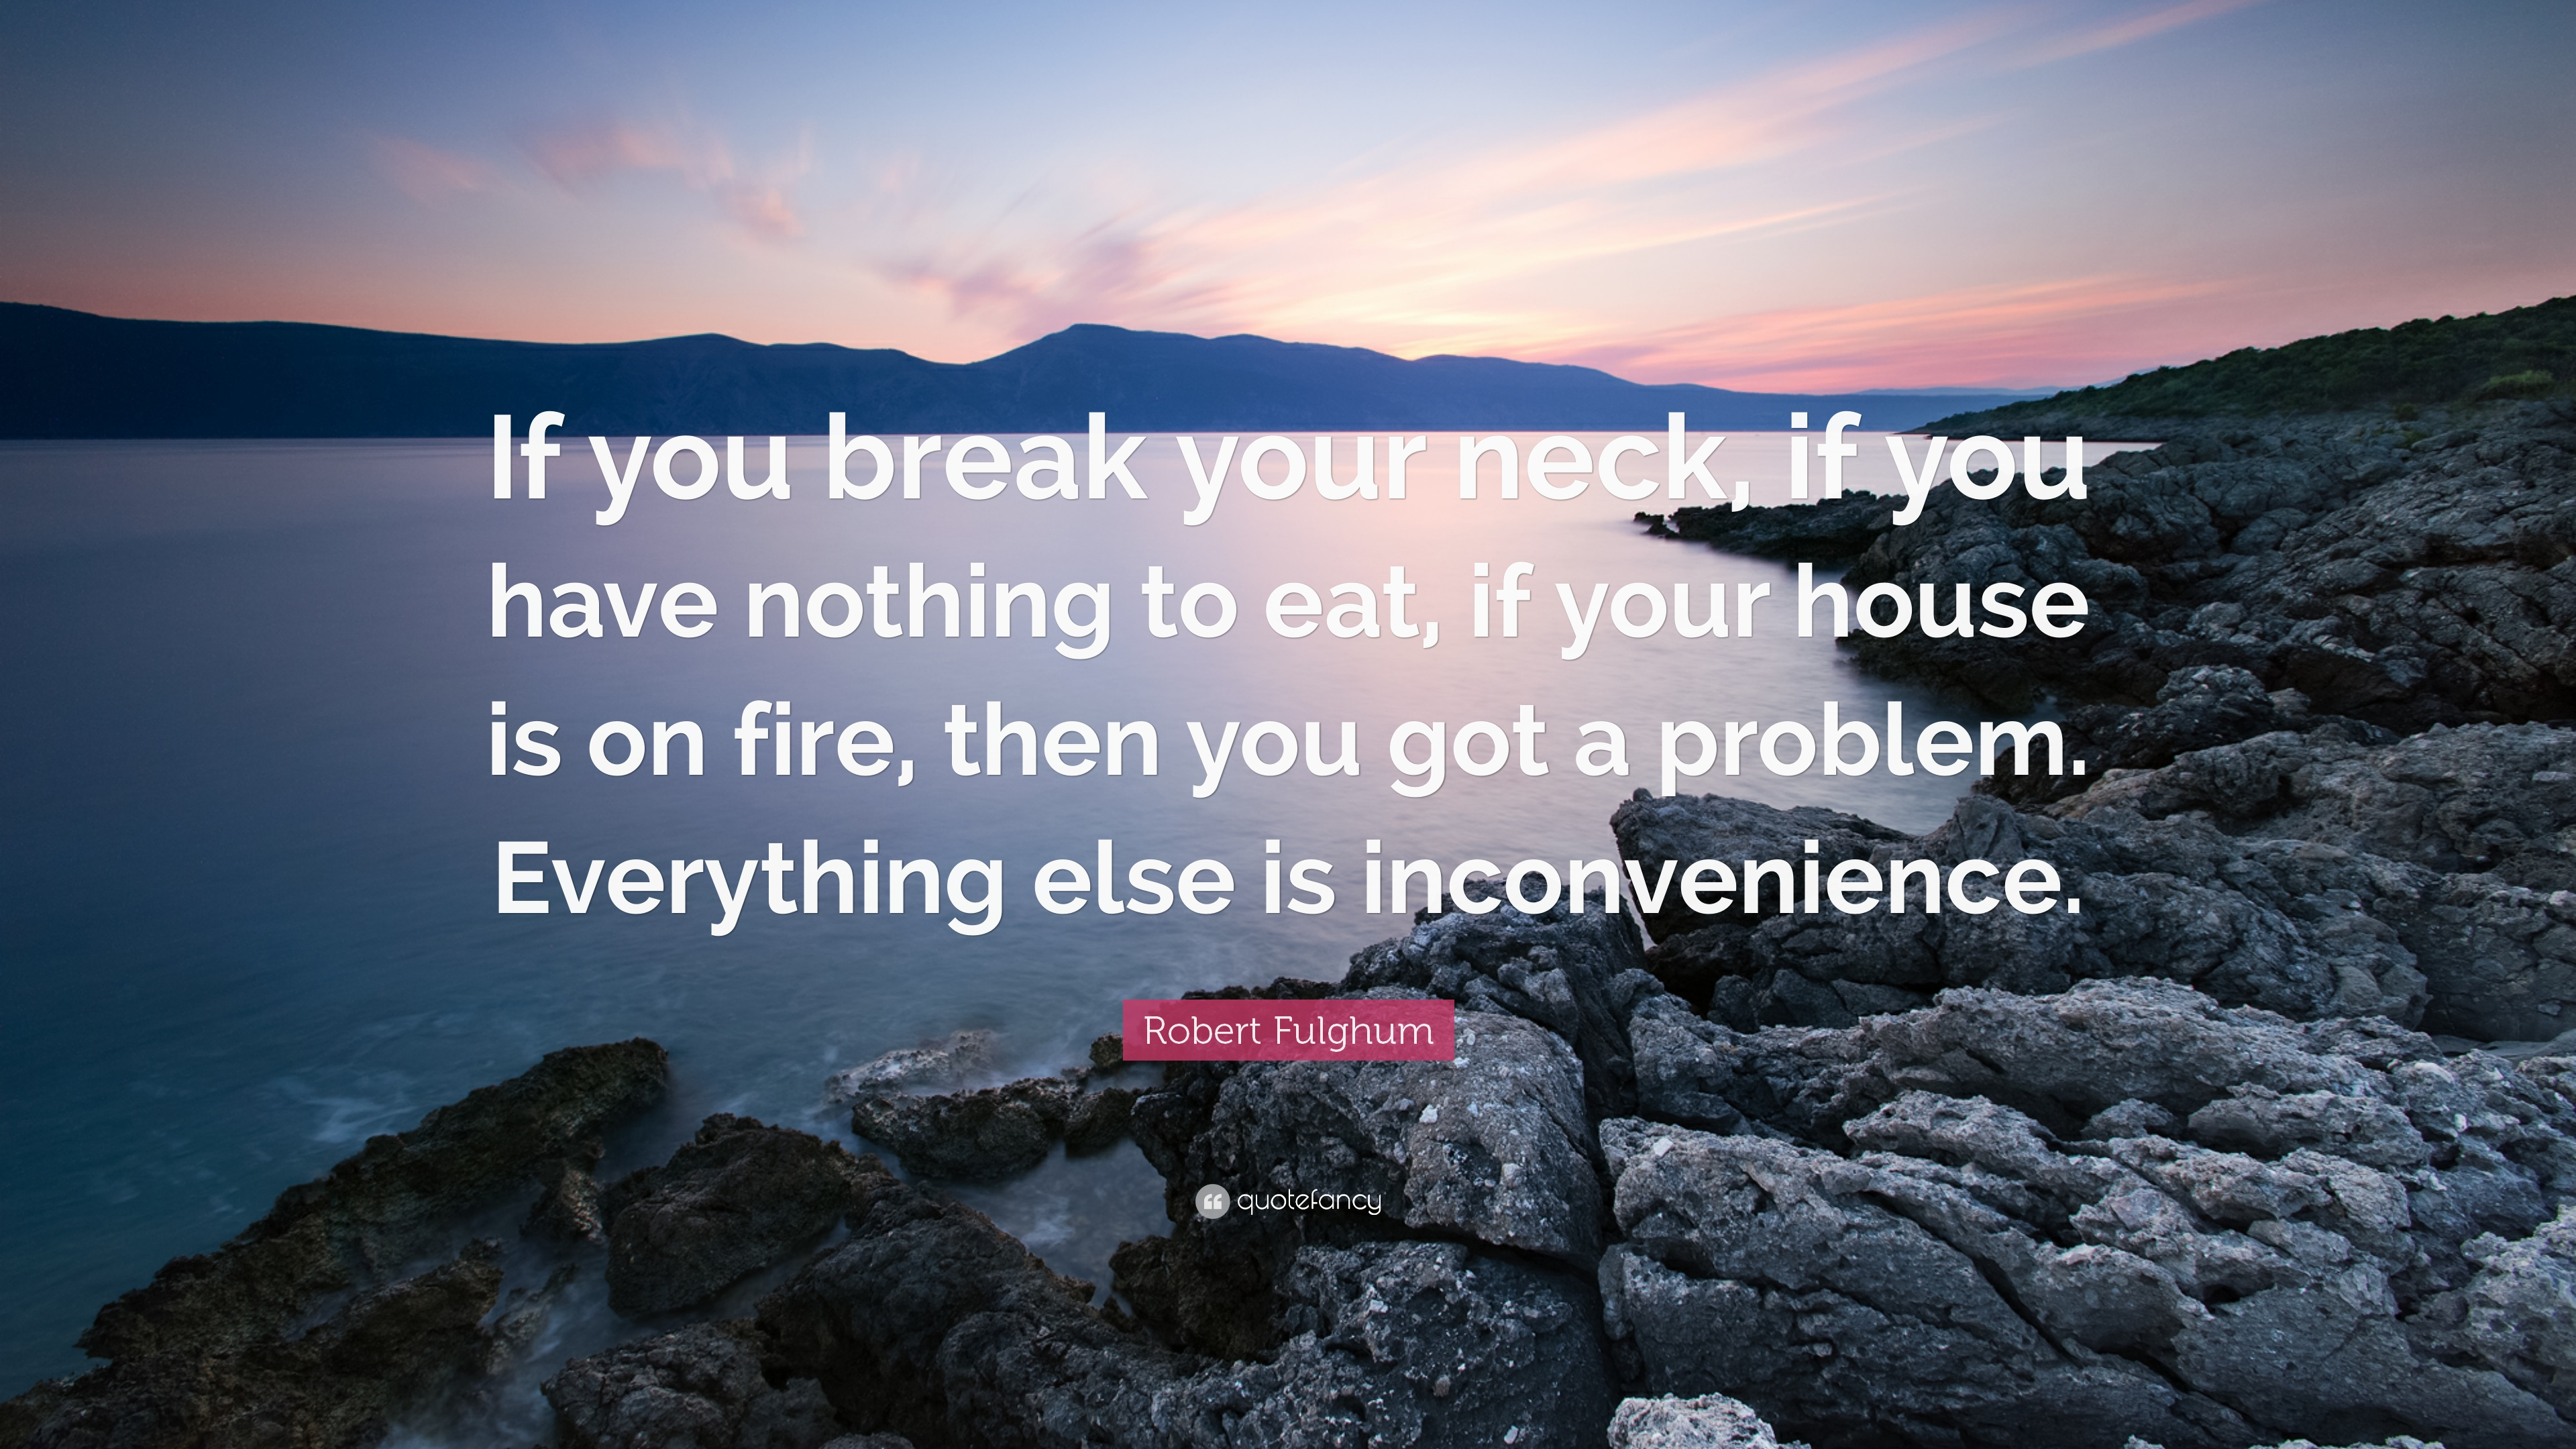 Robert Fulghum Quote If You Break Your Neck If You Have Nothing